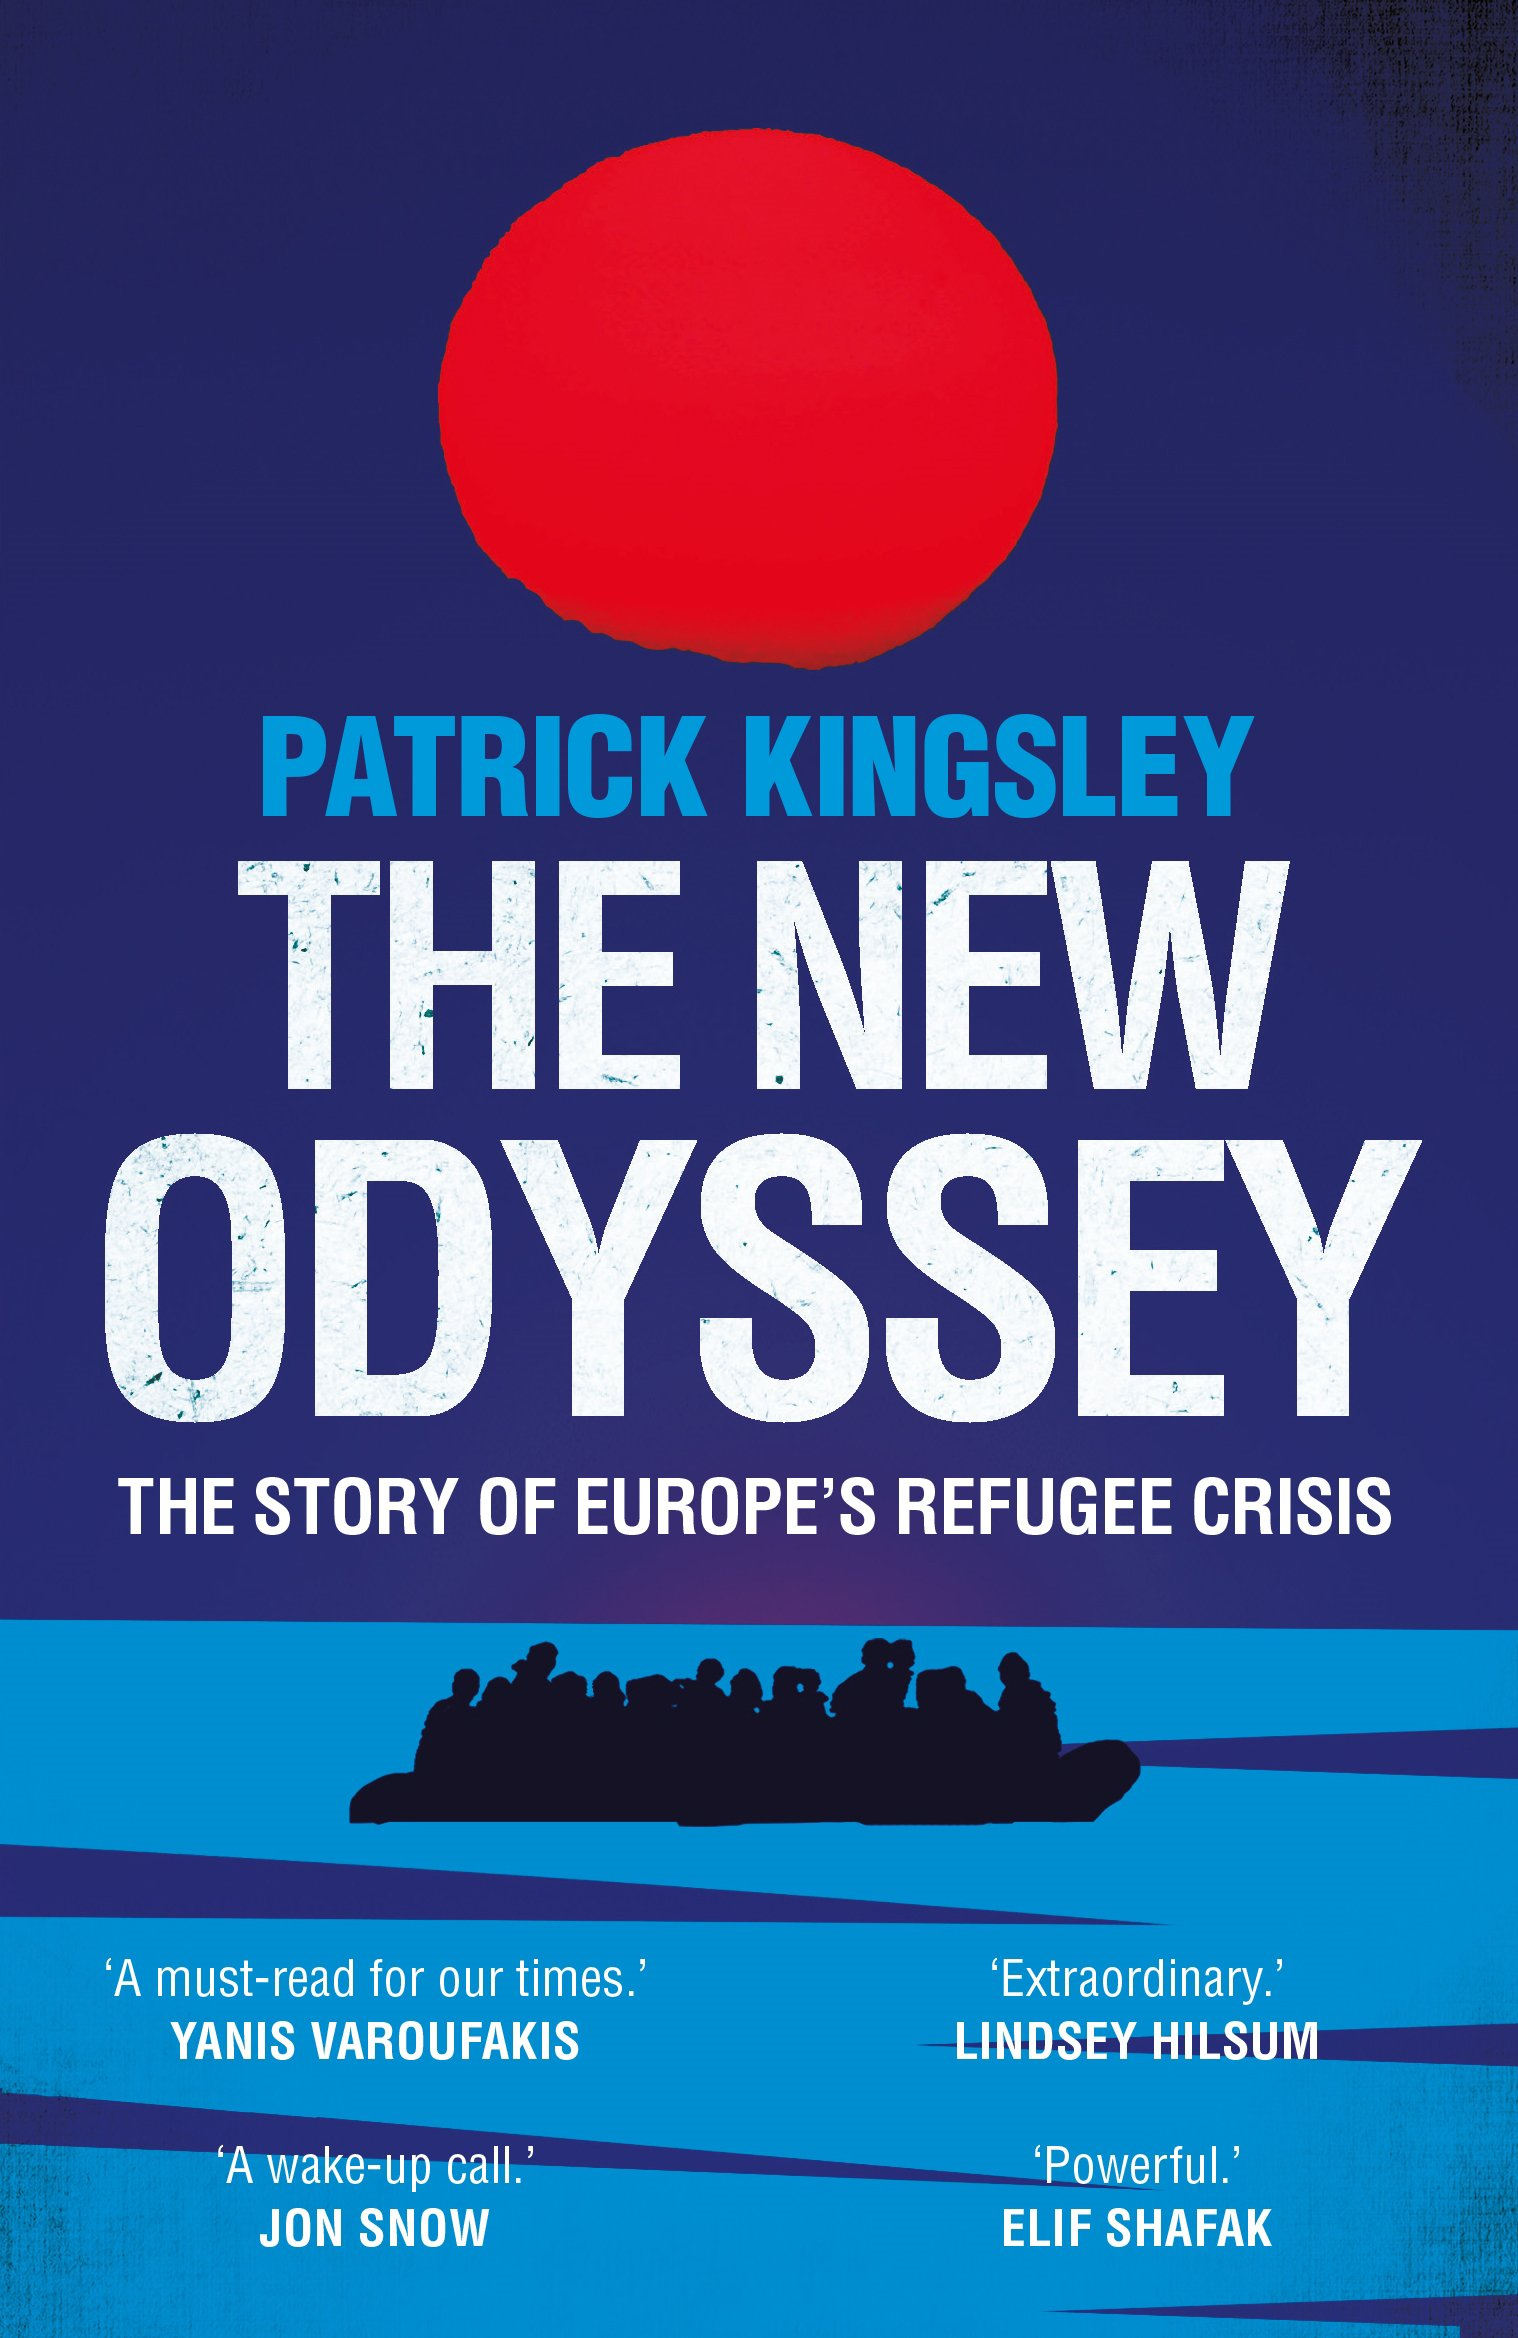 """The New Odyssey - Written by Patrick Kingsley, The Guardian's migration correspondent. He travelled to seventeen countries in 2015 to research this book and writes about the journey as well as the reasons for flight. He writes about volunteers, smugglers, coastguards, as well as """"politicians who look the other way"""". Read it and be changed."""